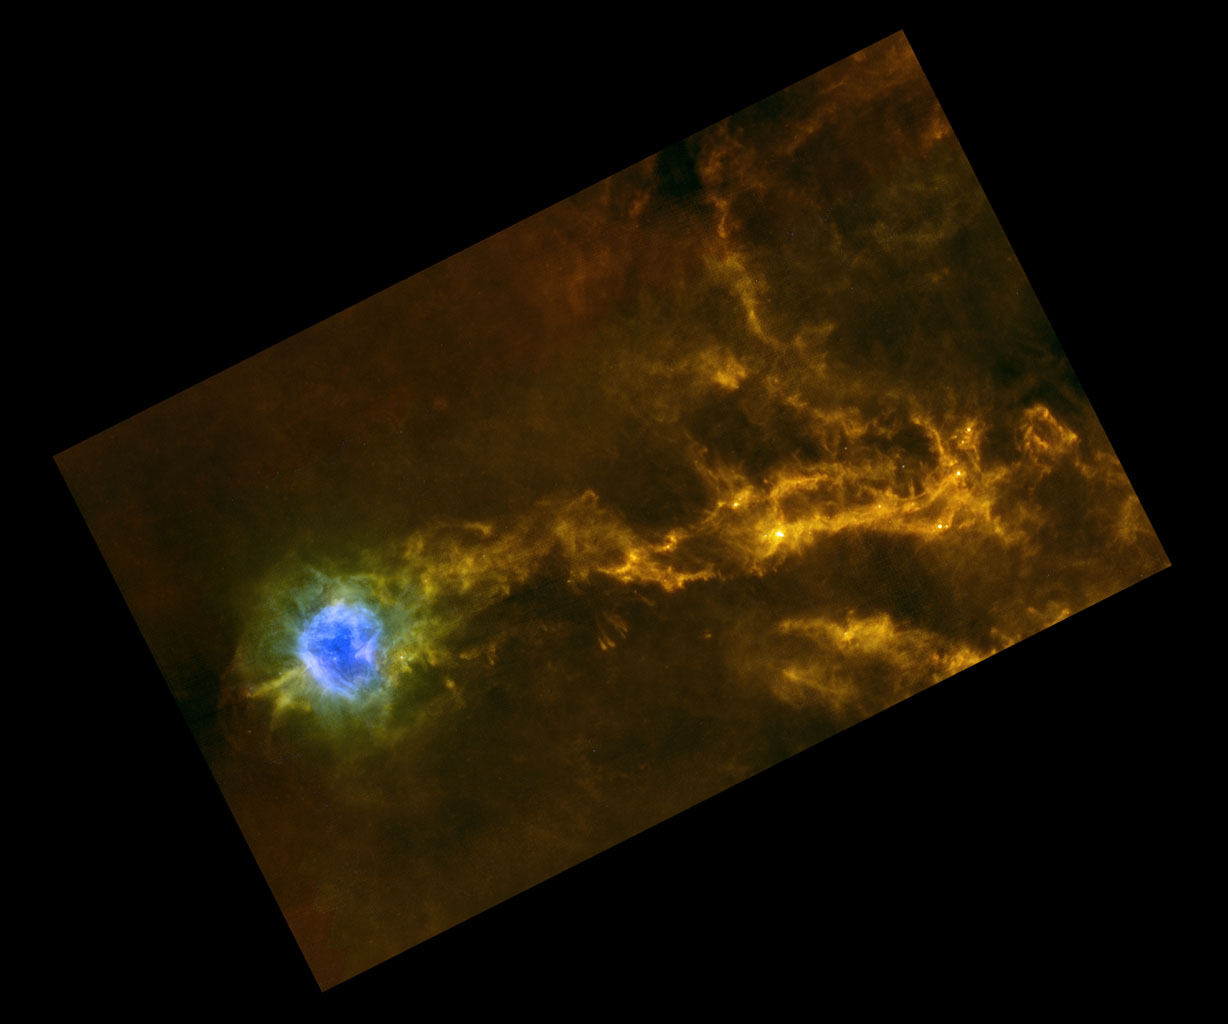 Dense filaments of gas in the IC5146 interstellar cloud can be seen clearly in this image taken in infrared light by the Herschel space observatory. The blue region is a stellar nursery known as the Cocoon nebula.